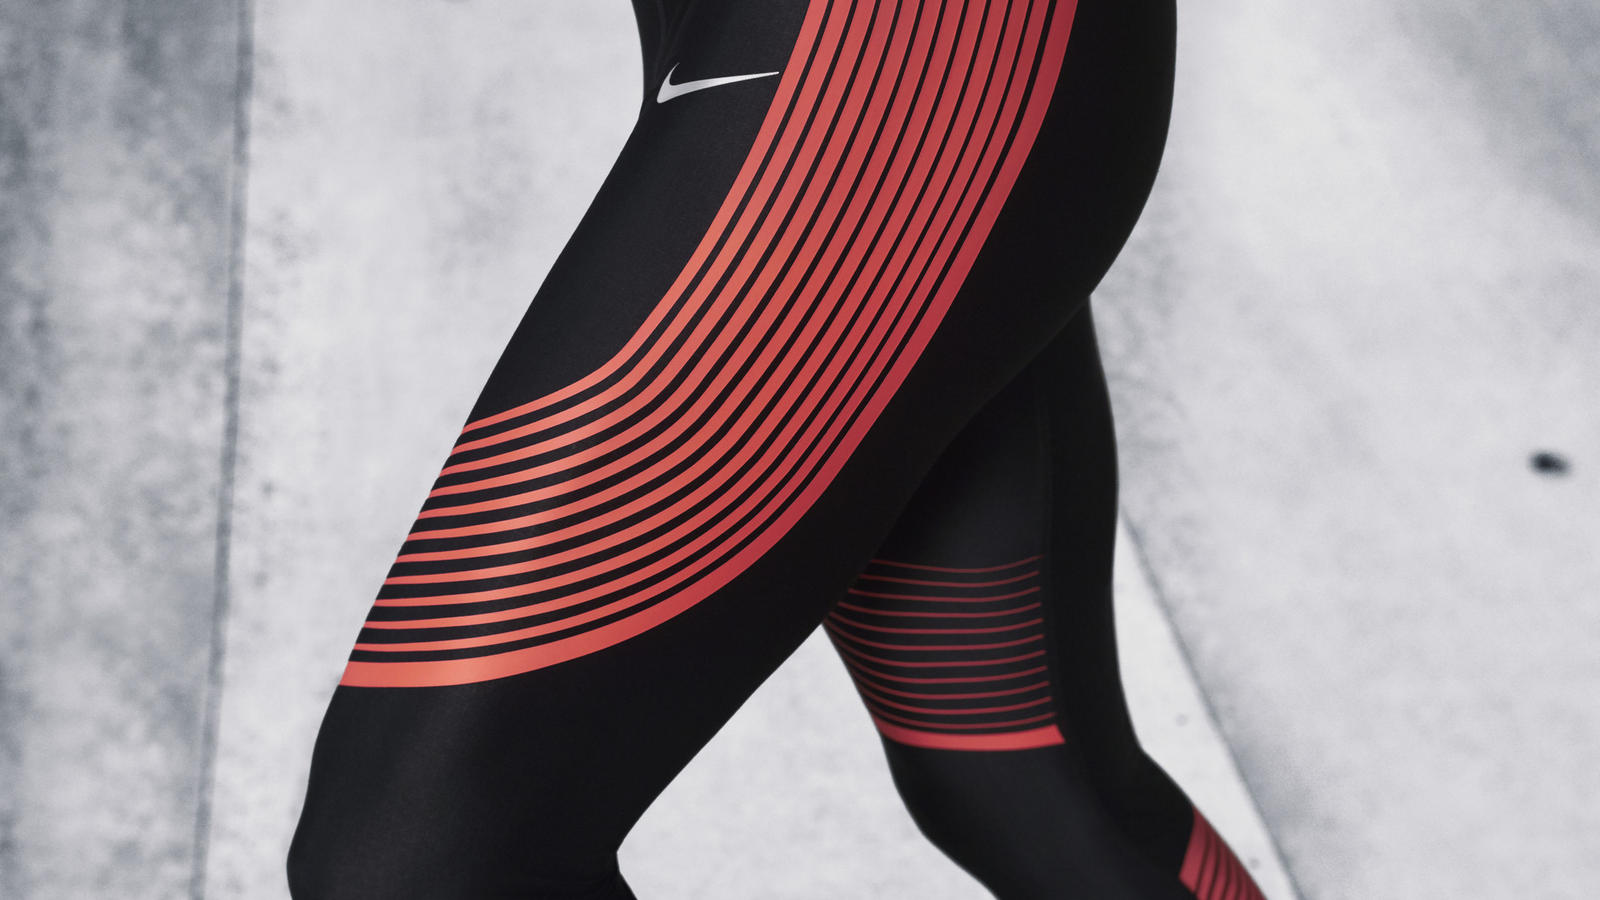 Sp16_bsty_tights_speedtight_detail1_07_hd_1600